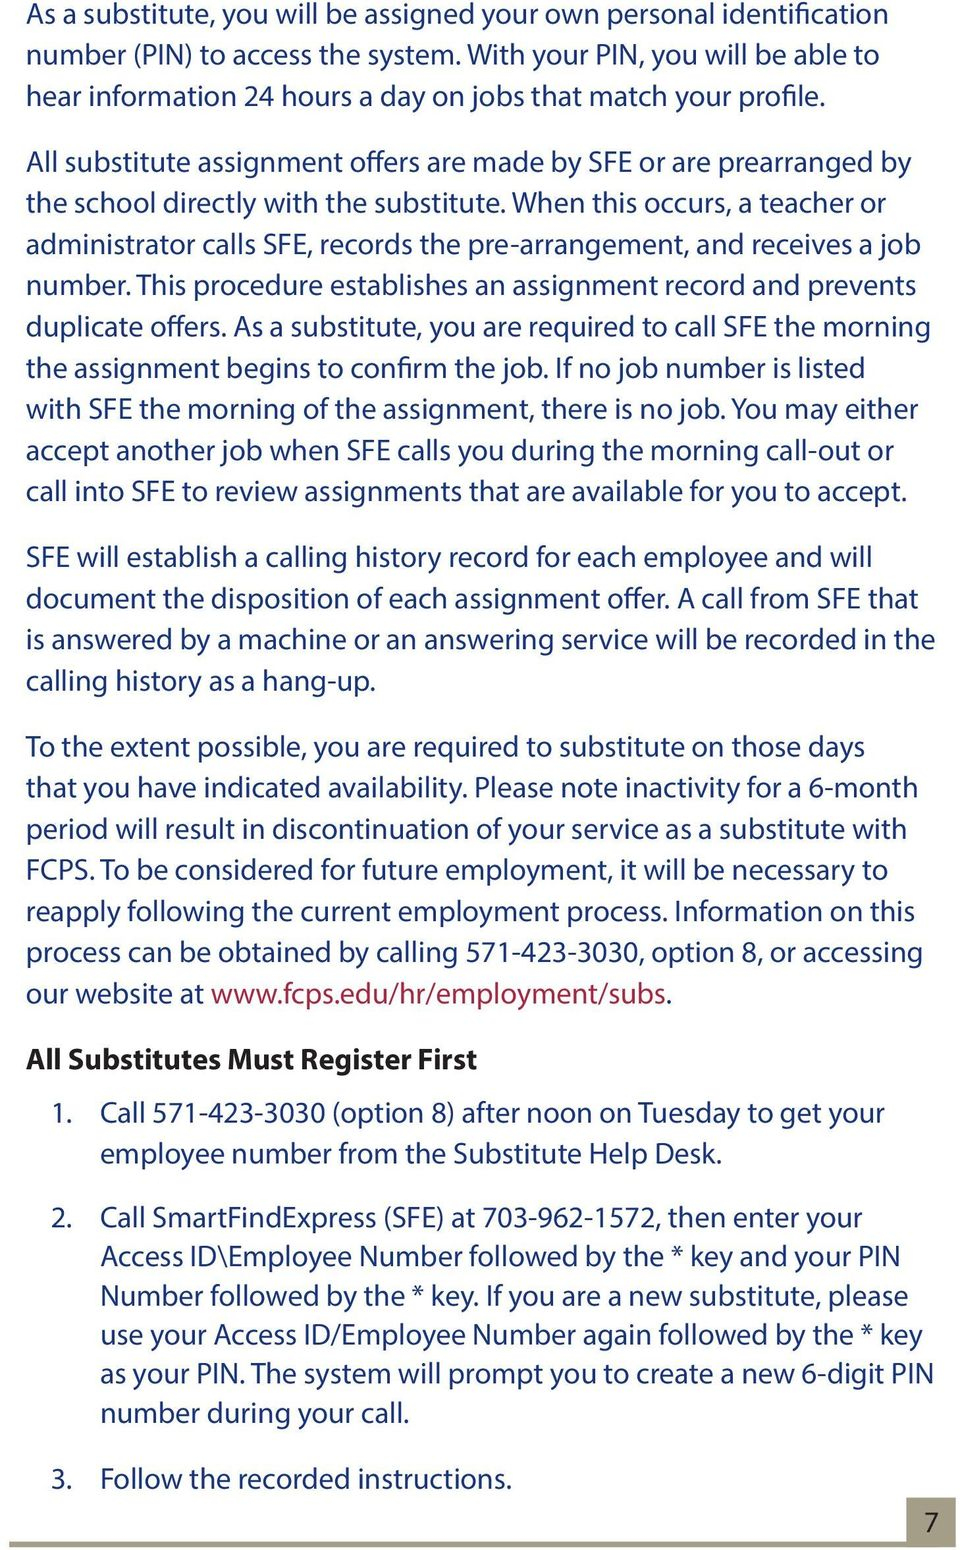 All substitute assignment offers are made by SFE or are prearranged by the school directly with the substitute.